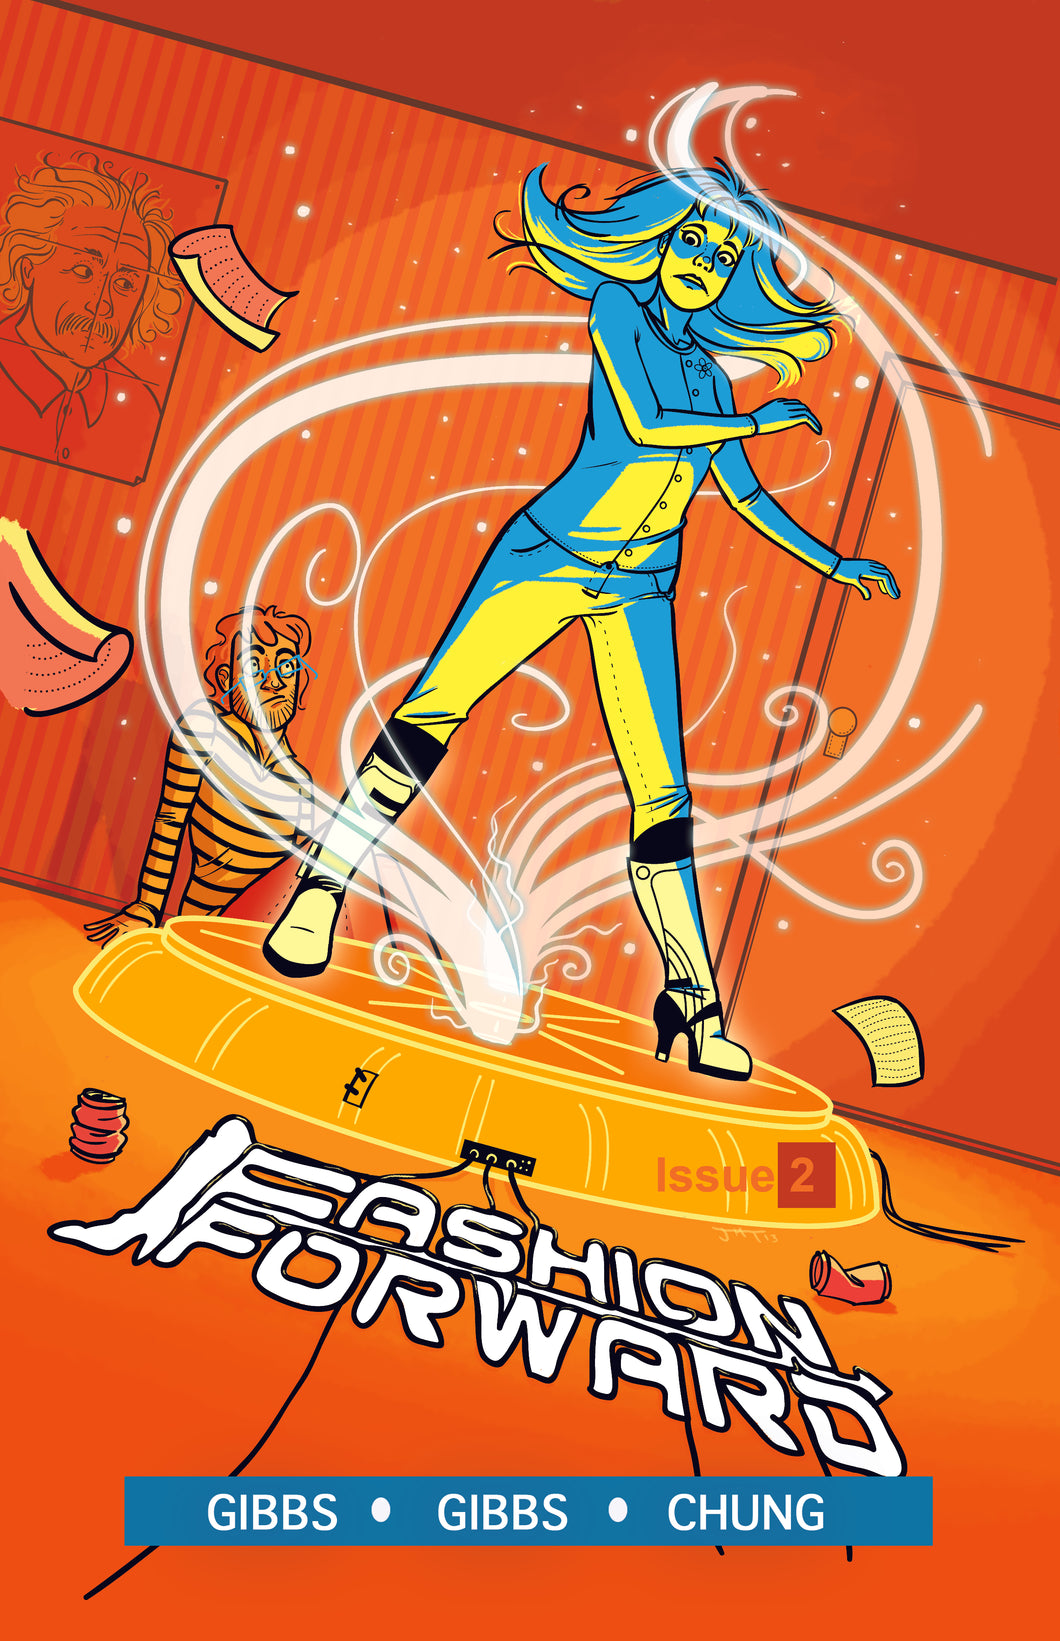 Fashion Forward (Issue #2)